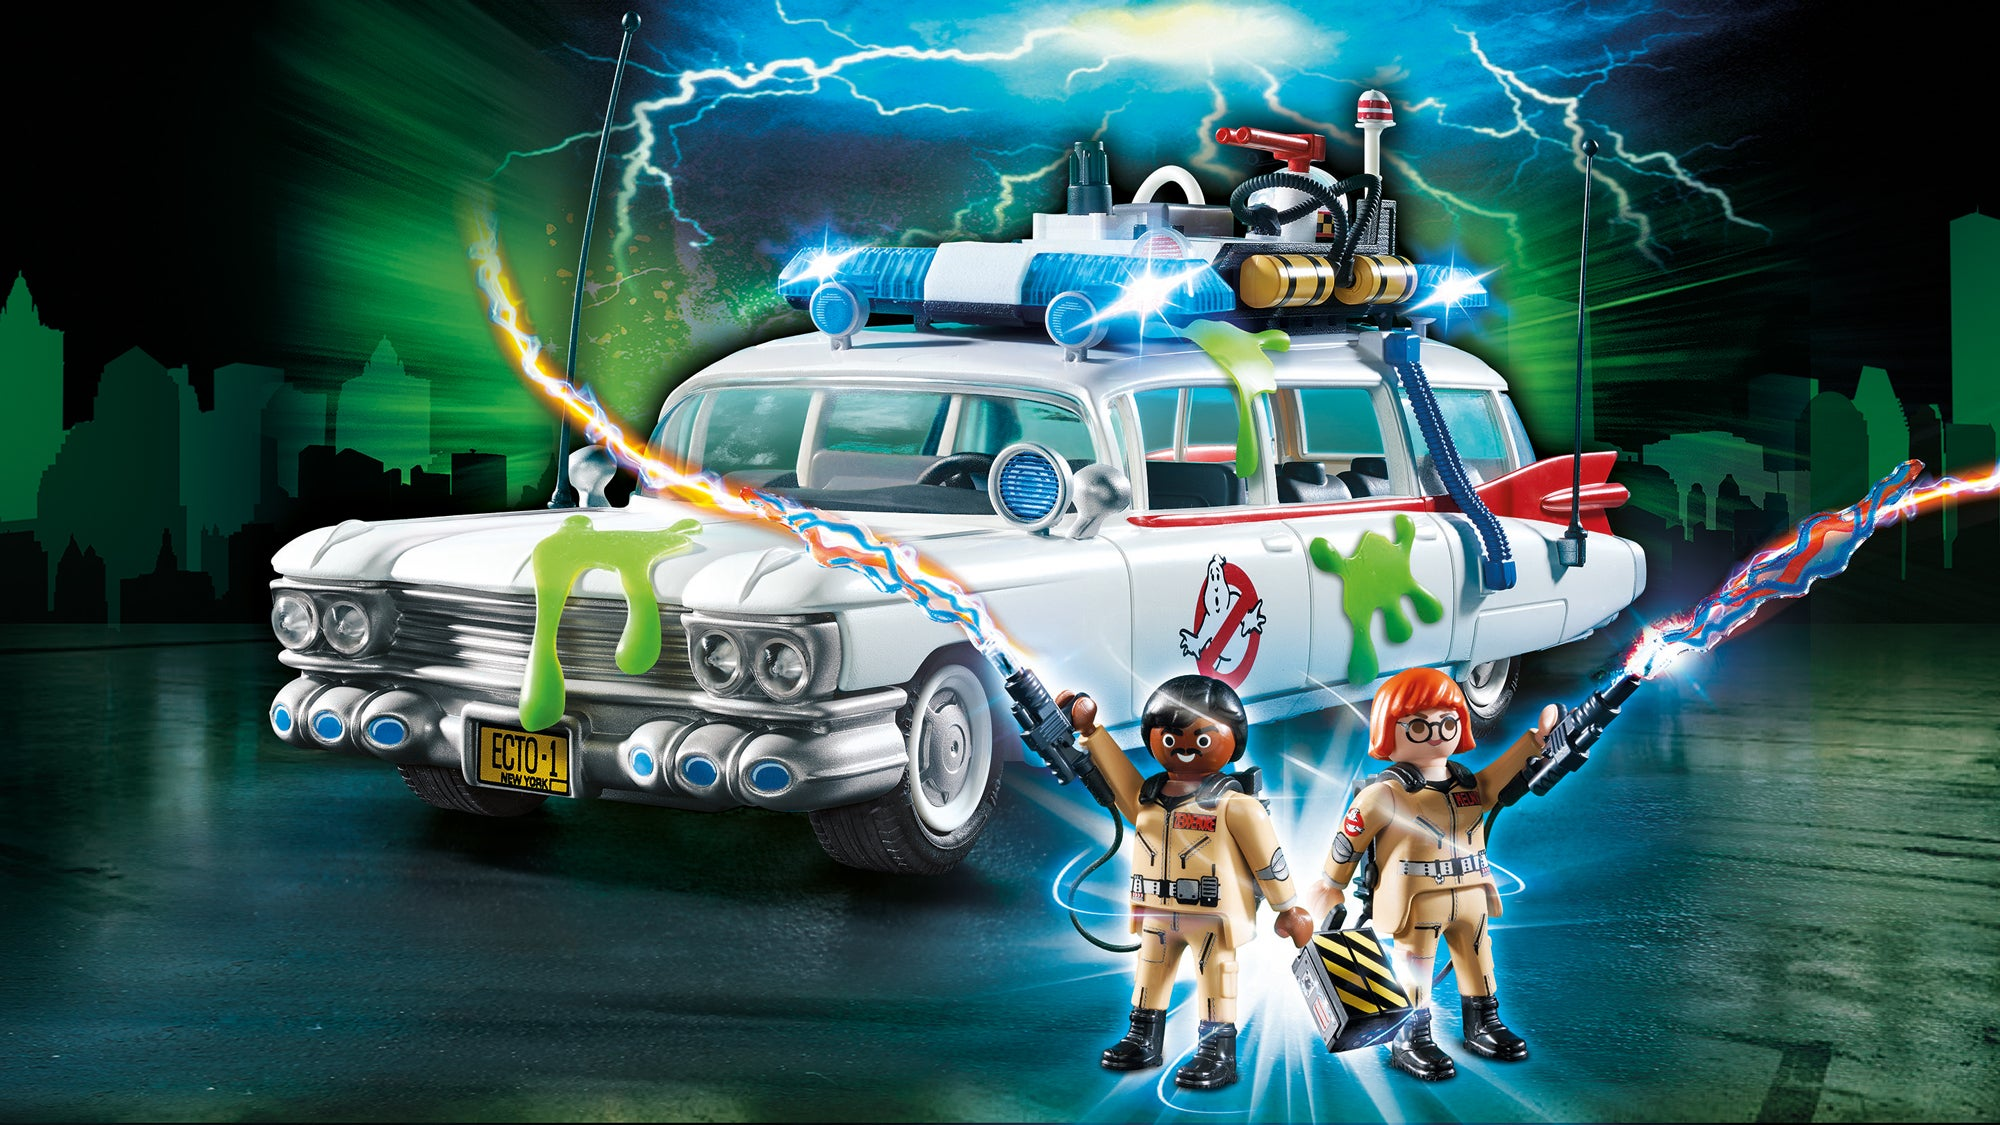 Playmobil's New Ghostbusters Toys Are So Great You'll Wish You Had A Childhood Do-Over